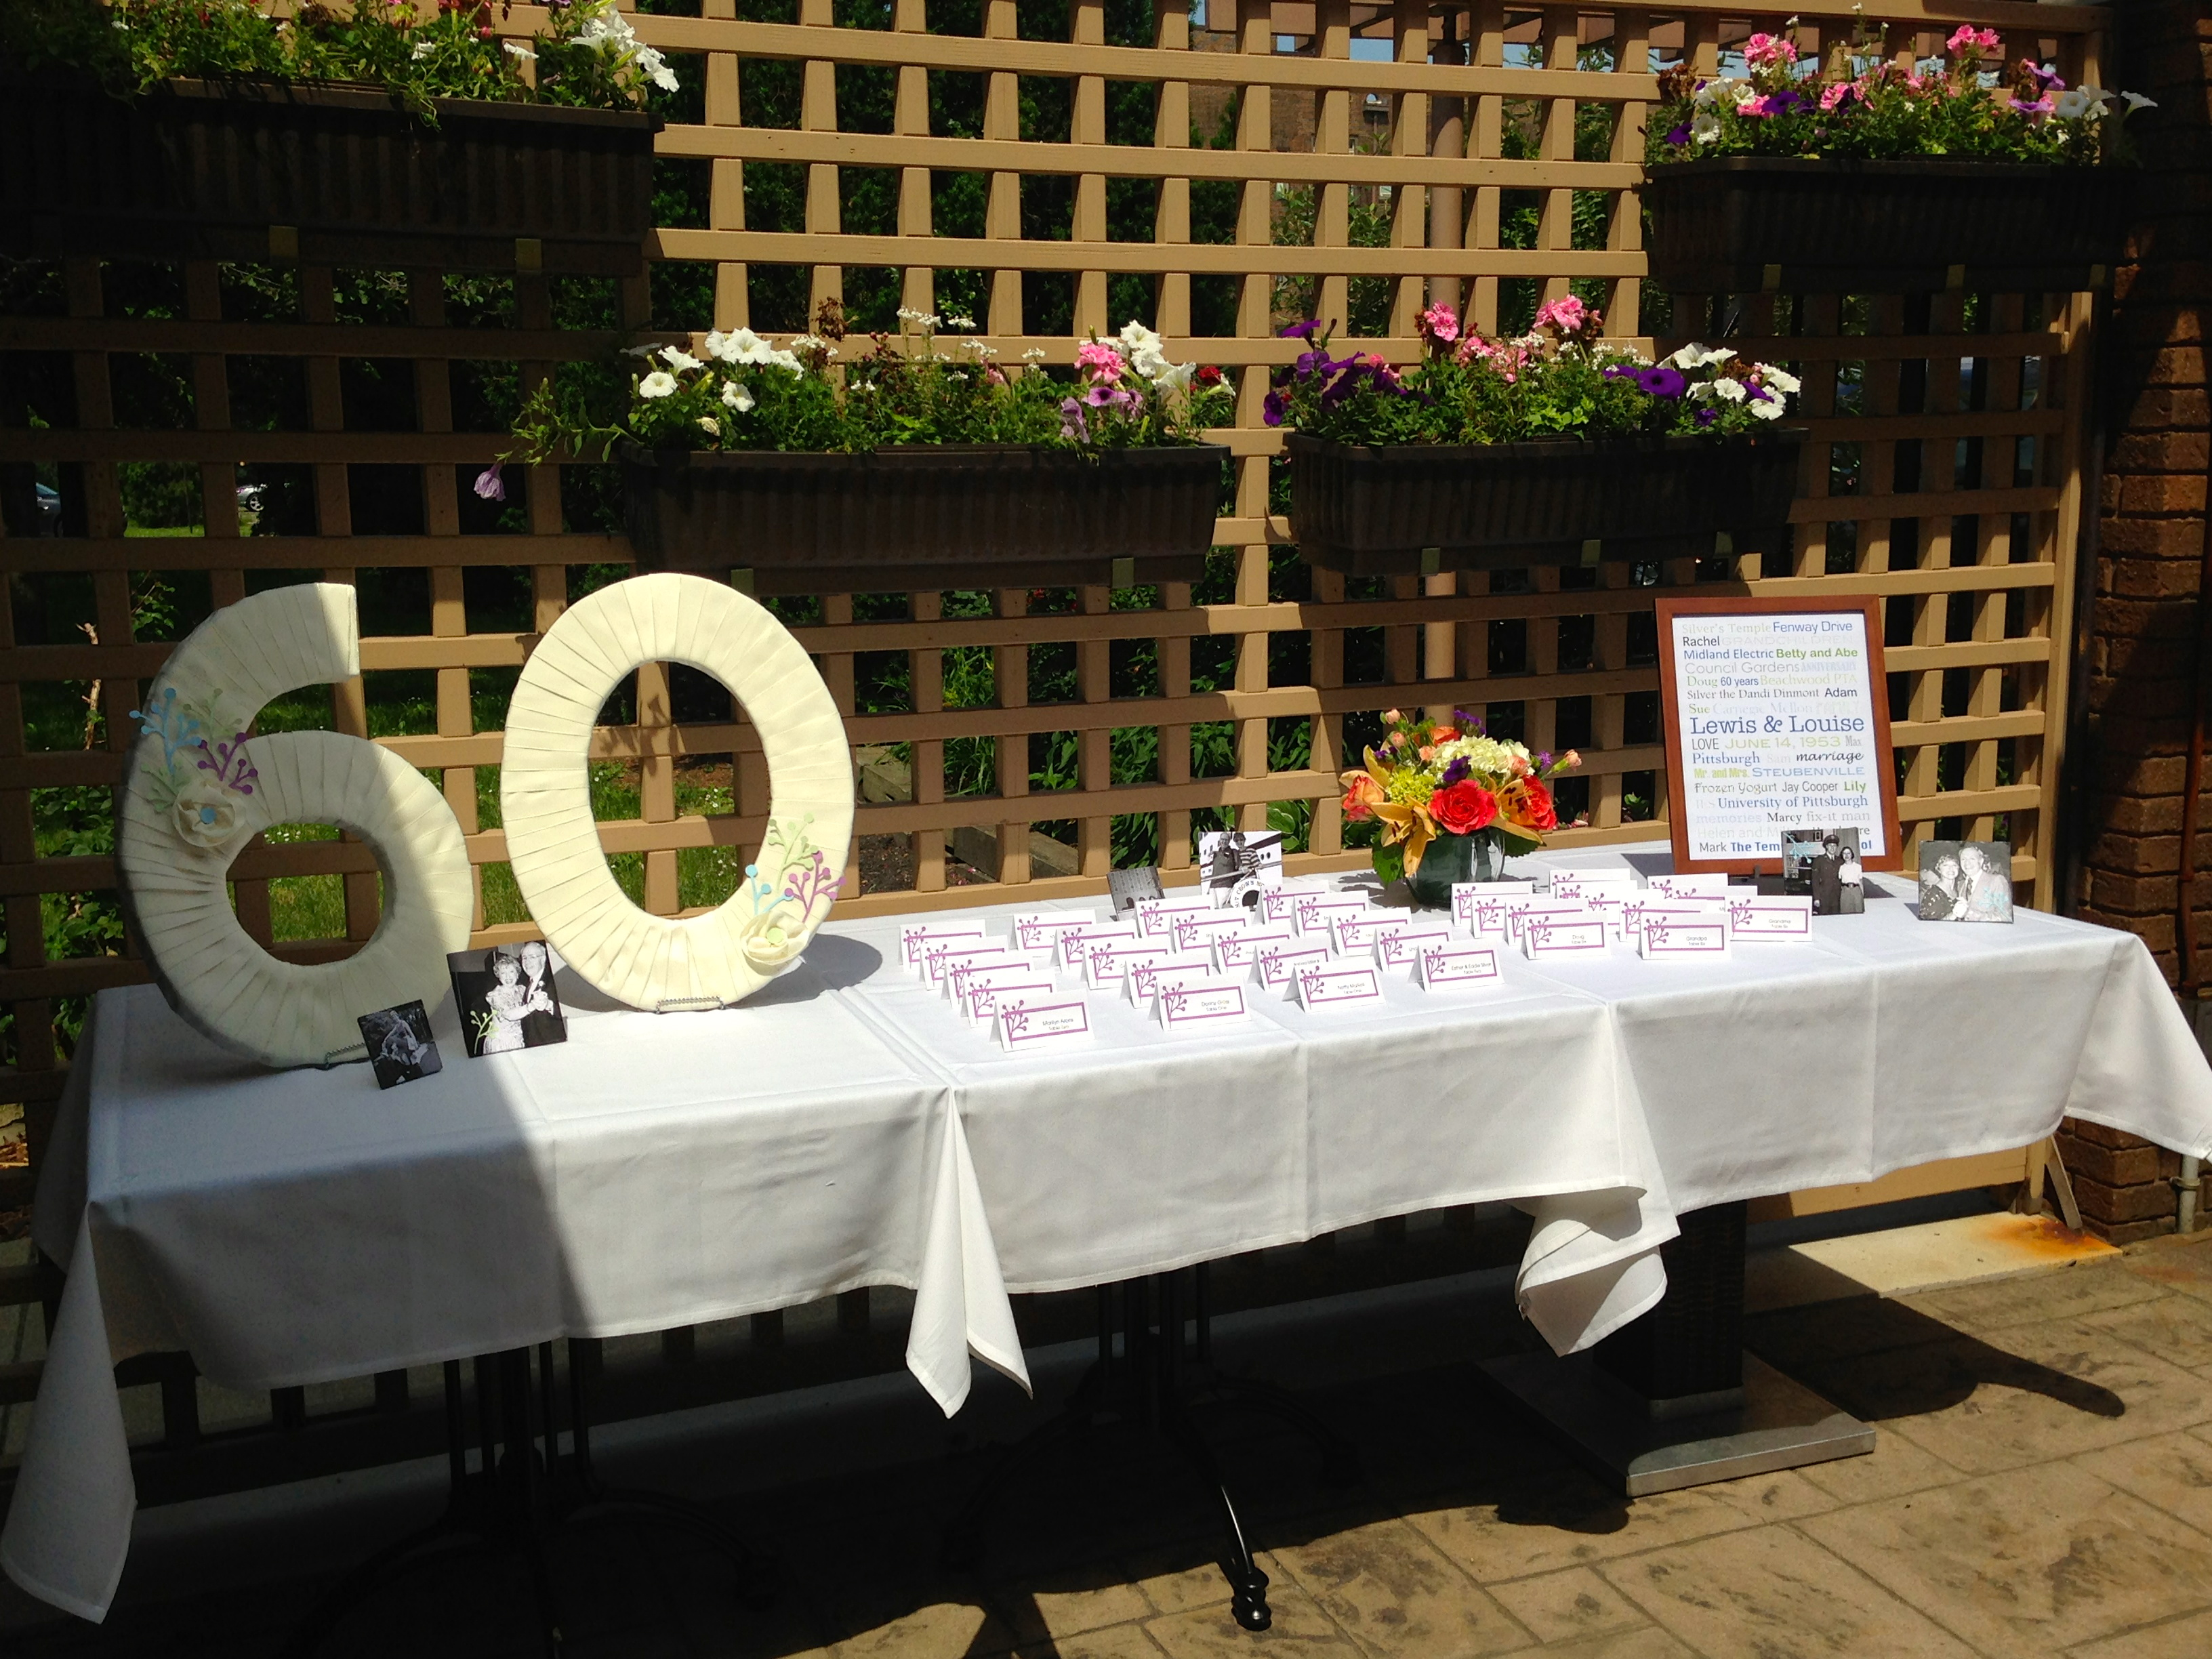 DIY Wednesday: 60th Anniversary Party